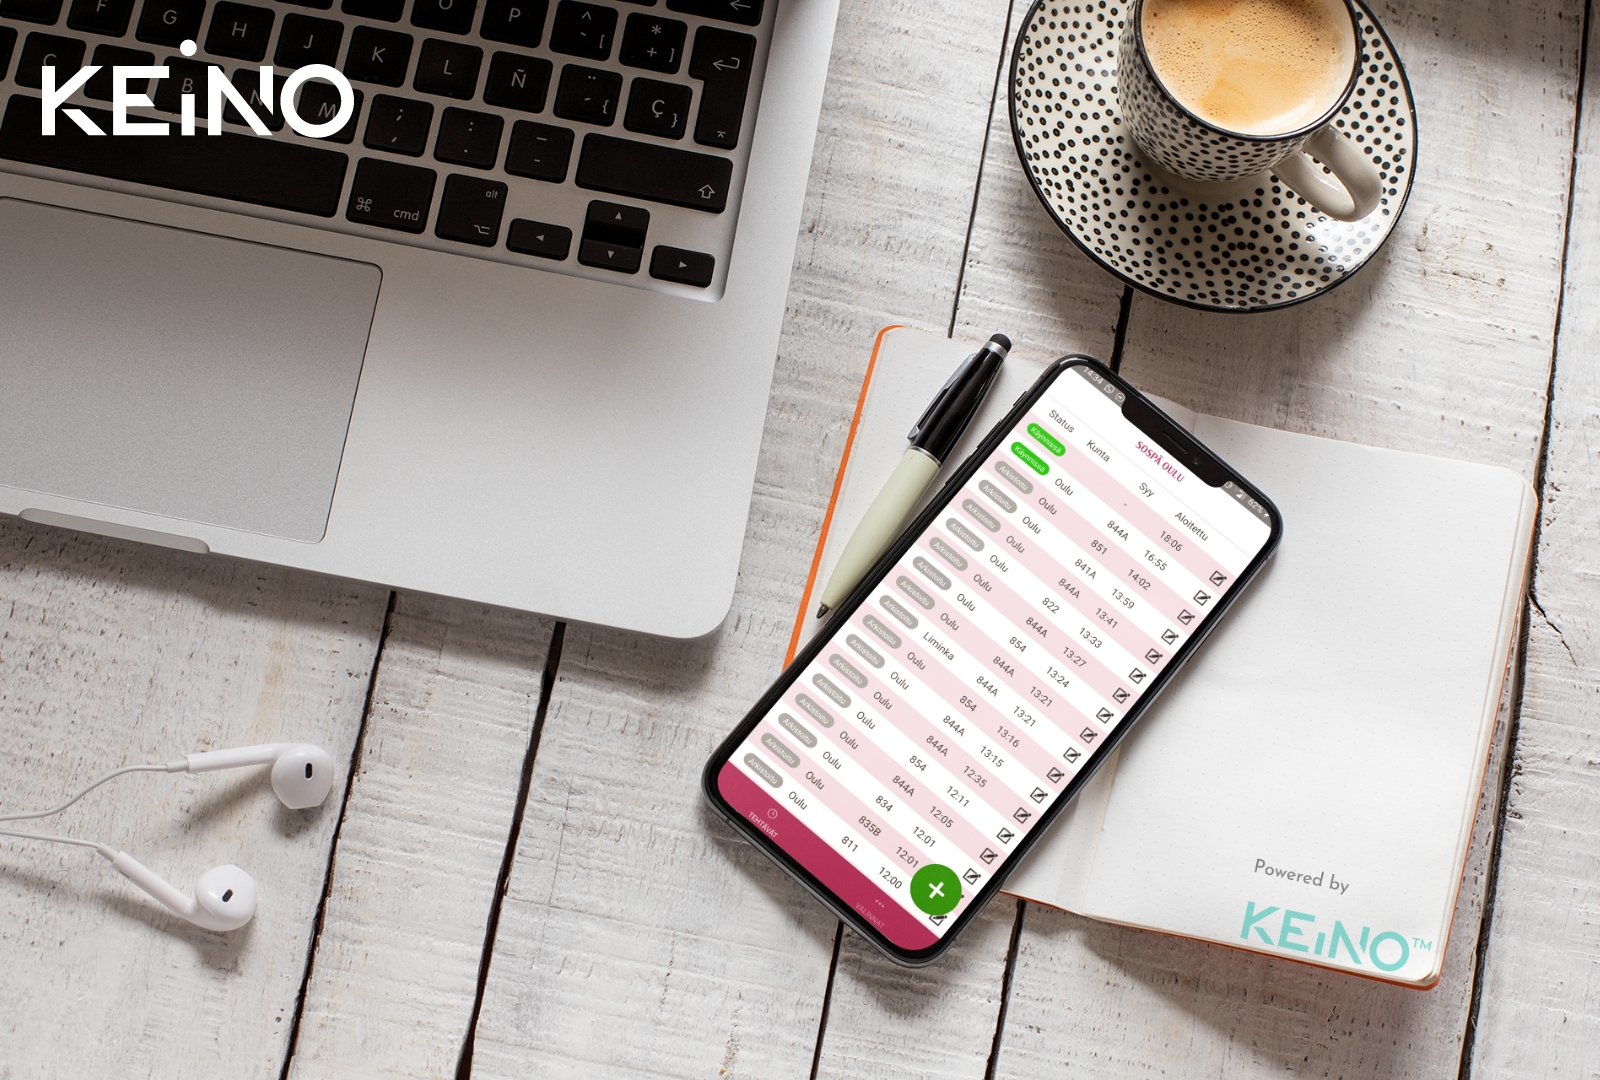 Municipalities in the Oulu region join forces in out-of-hours social emergency services - a mobile application from KEiNO to record hours worked between municipalities.